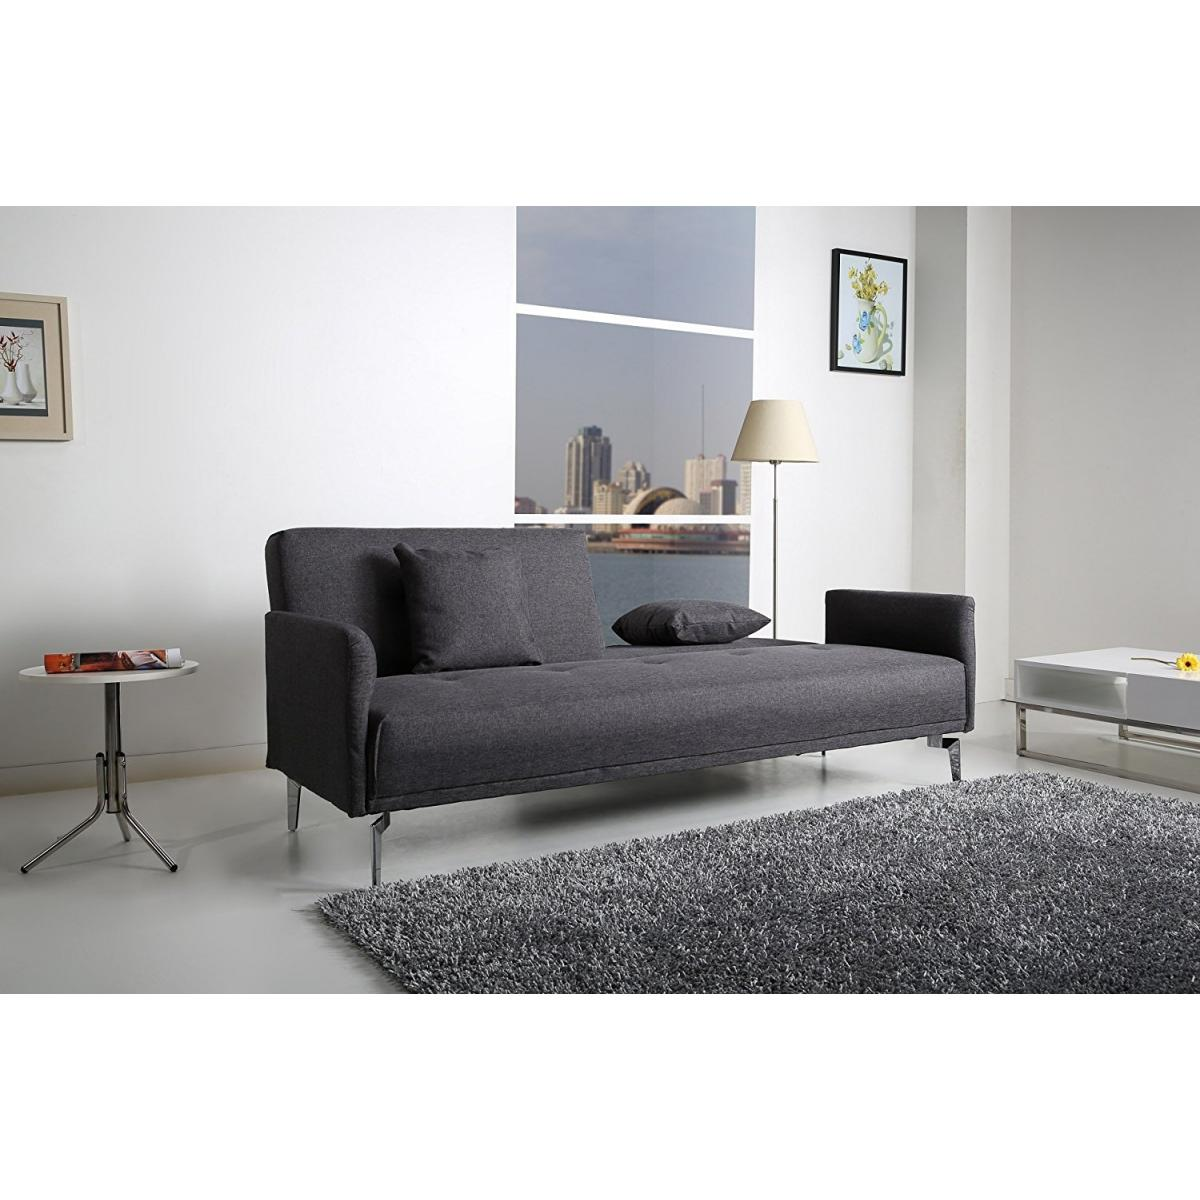 Schlafsofa 199x86 Schlafcouch Garnitur Sofa Lounge Couch